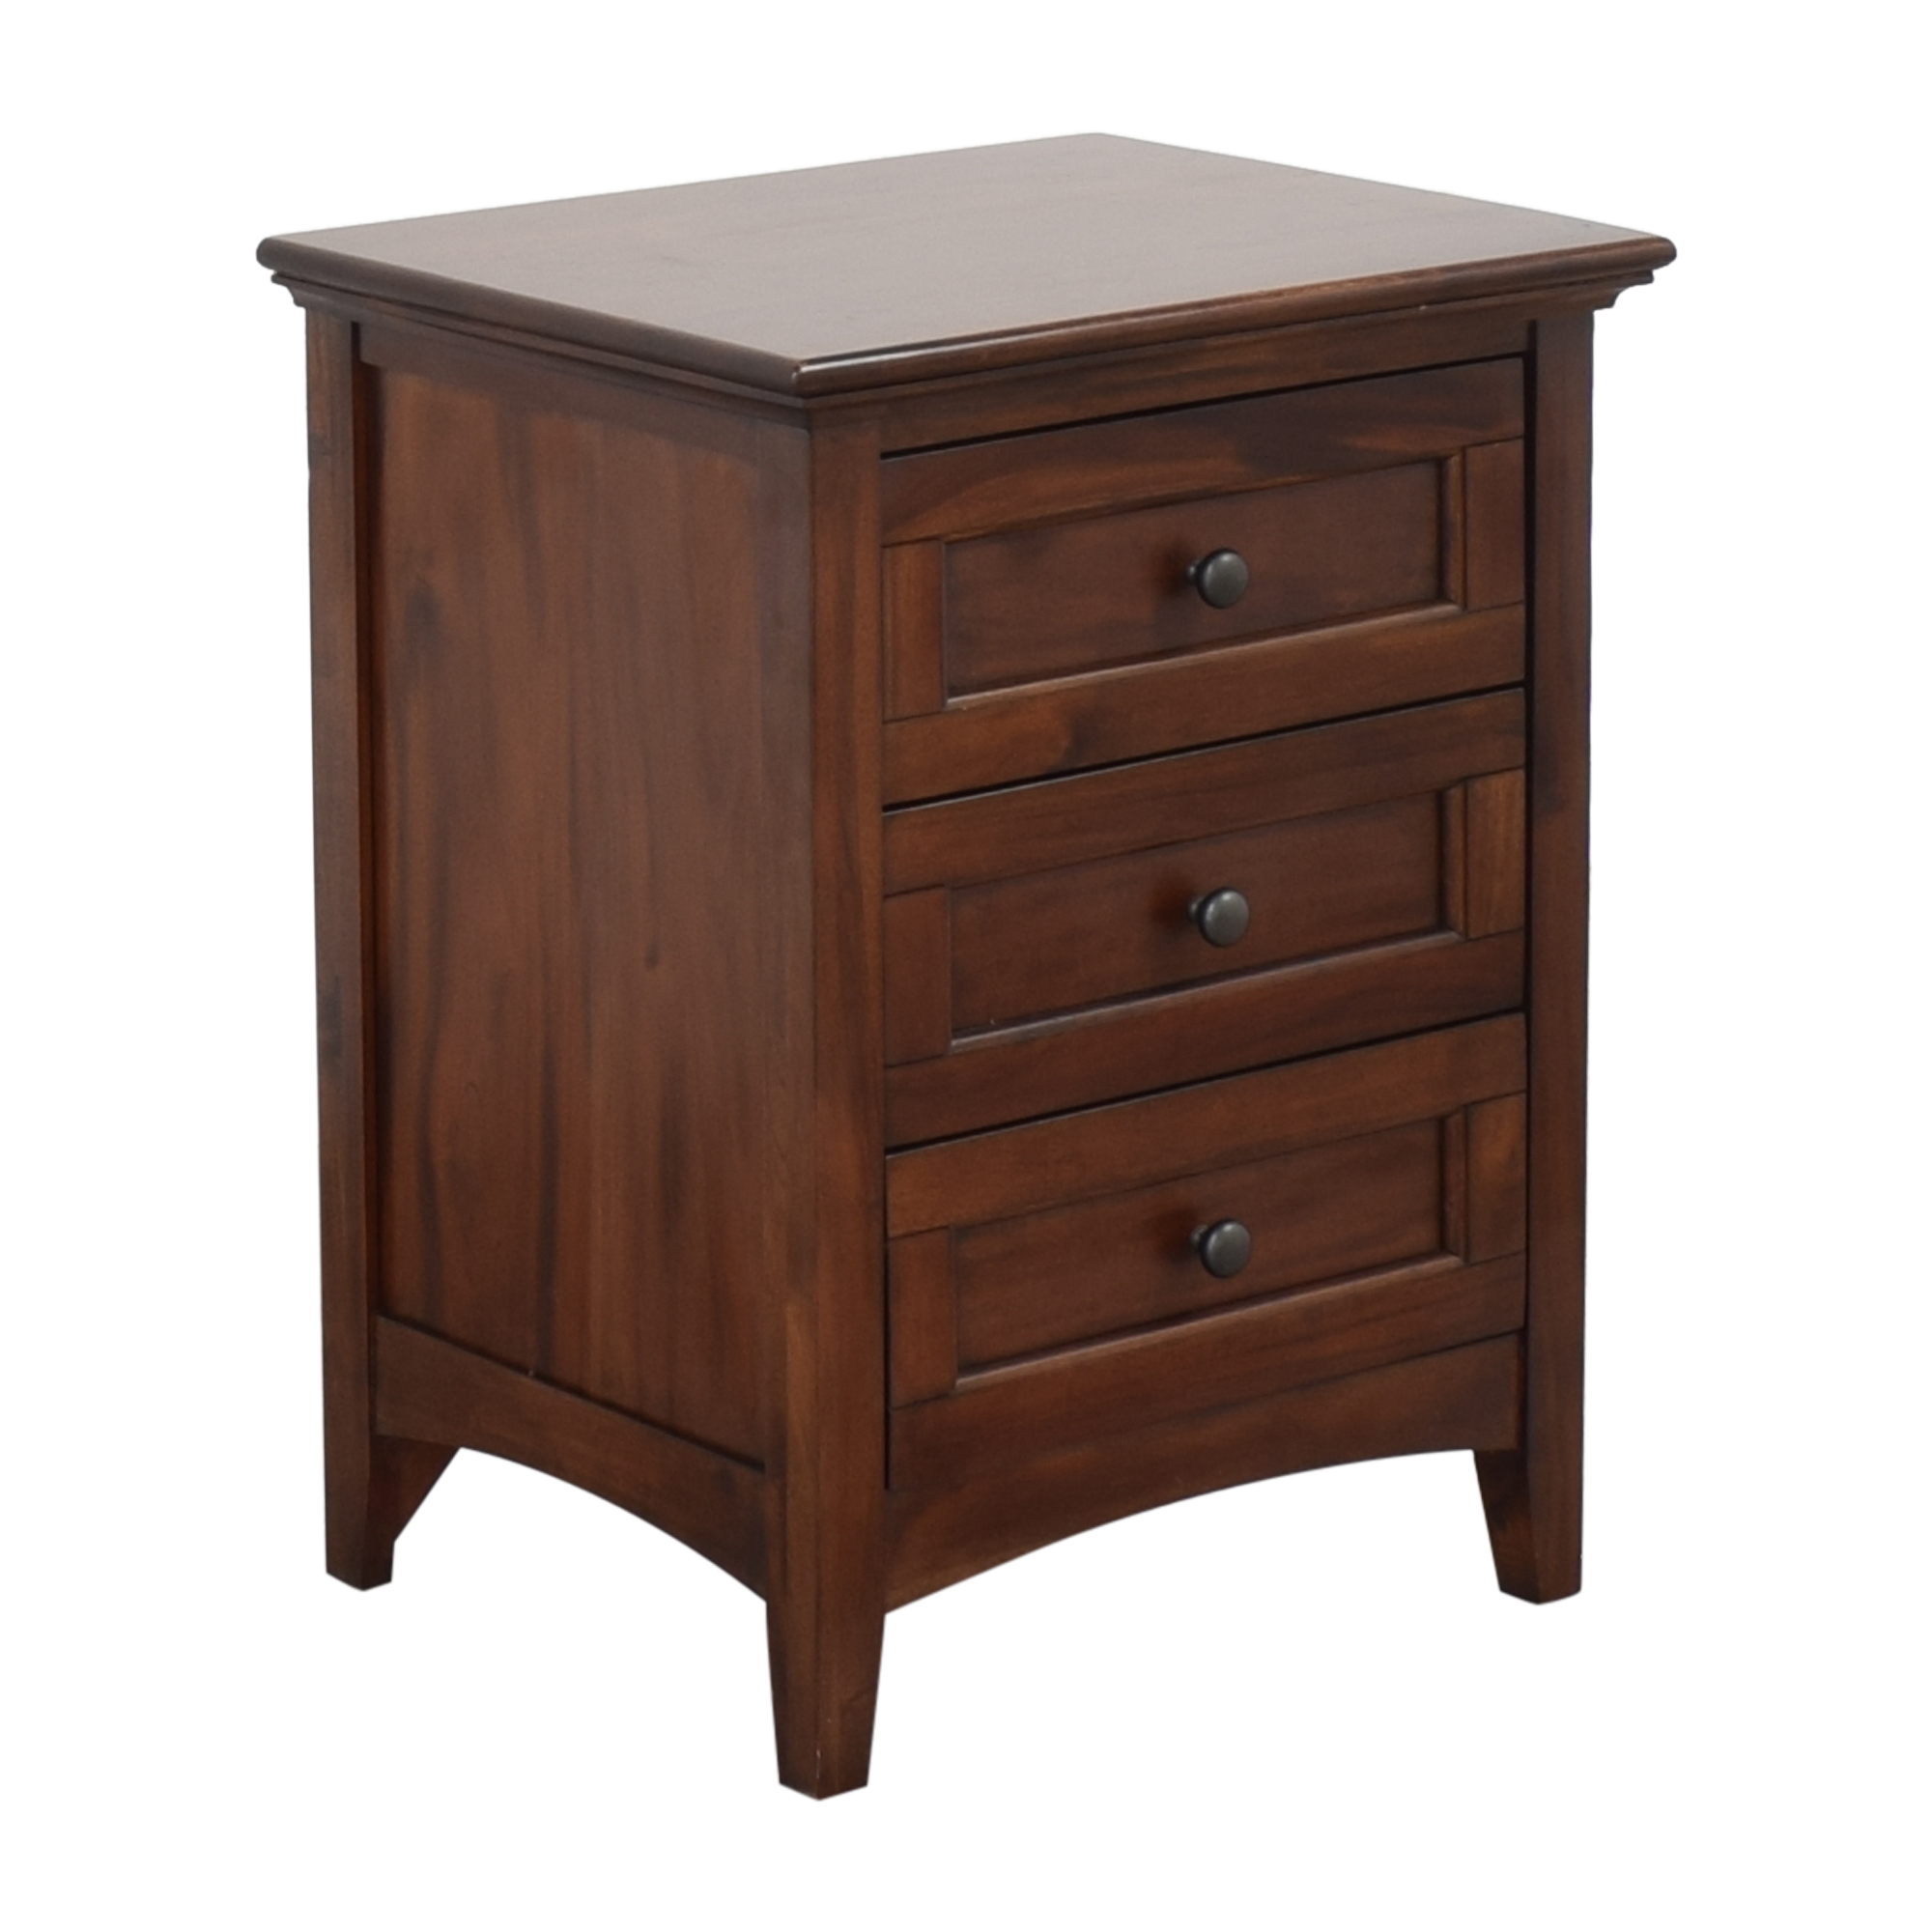 A-America Wood Furniture A-America Three Drawer Nightstand dark brown